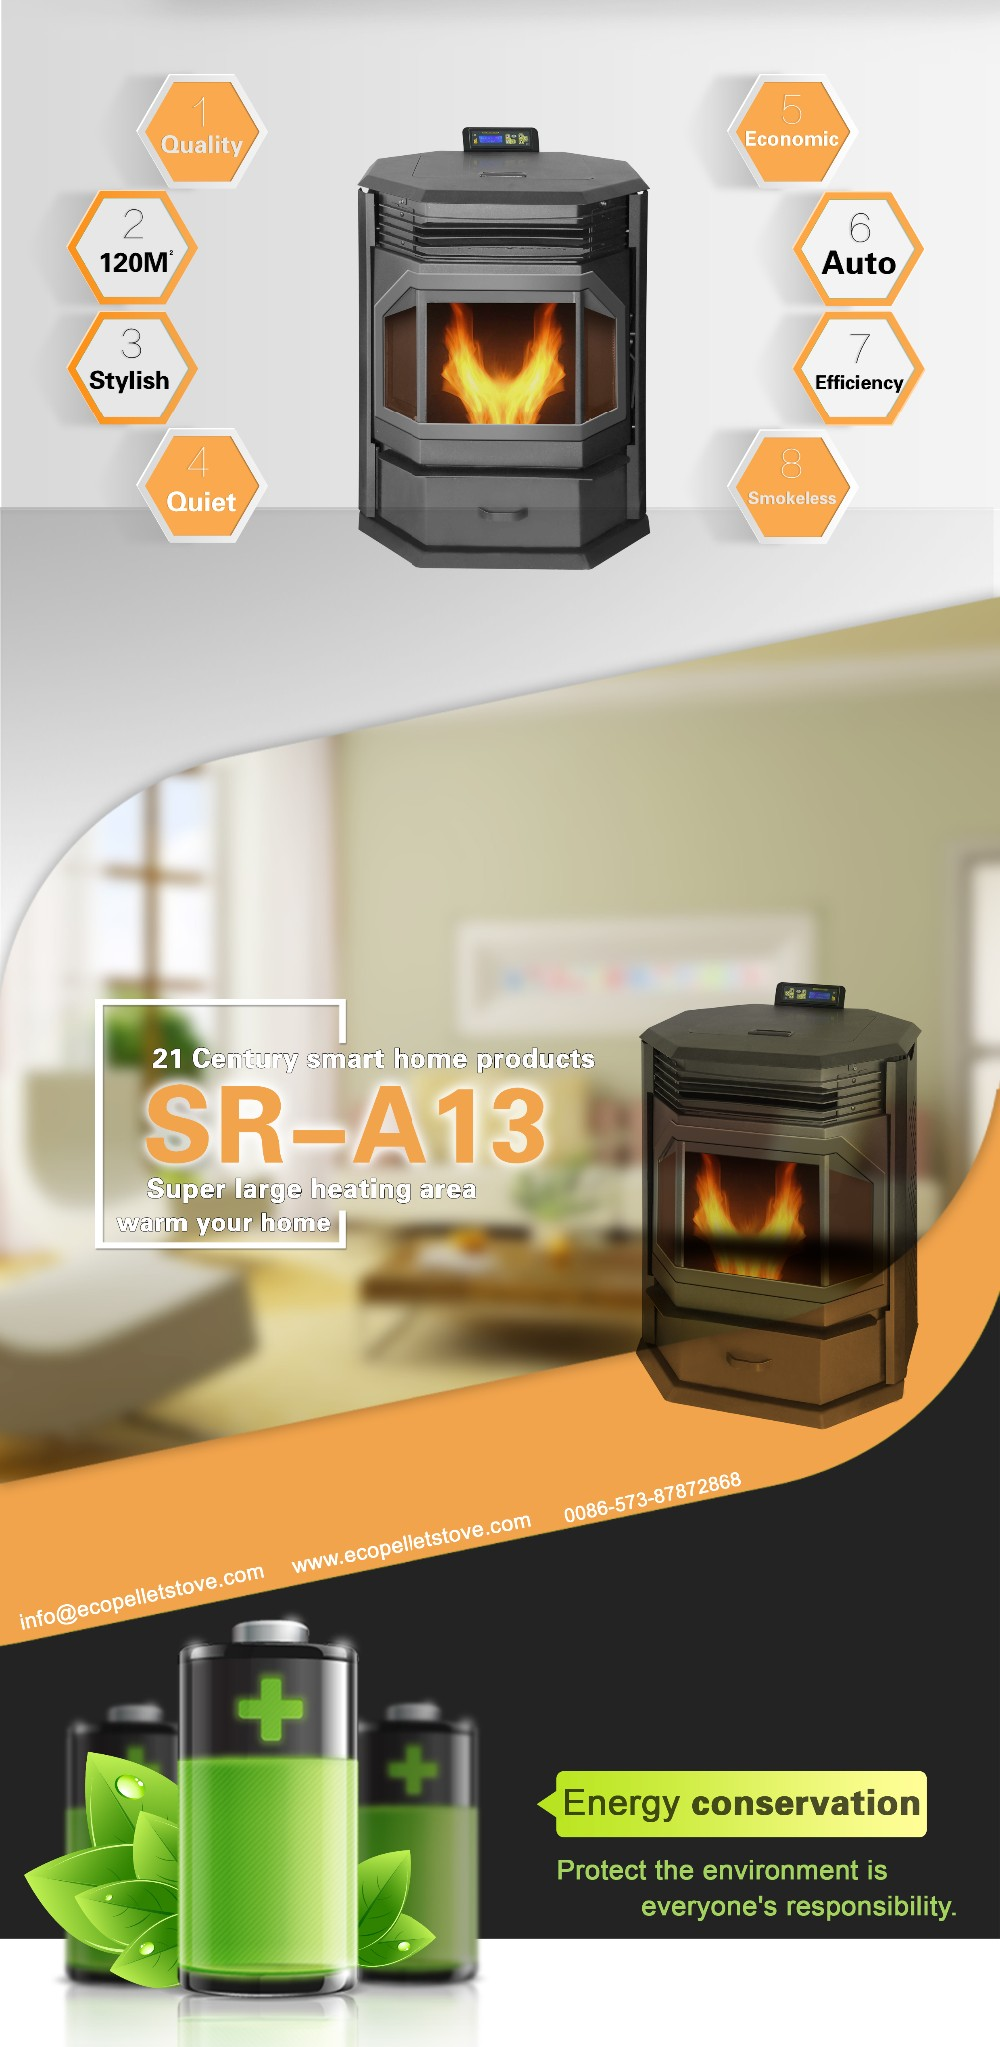 13 Kw Remote Control Ventless Pellet Stove With Multi Fuel ...